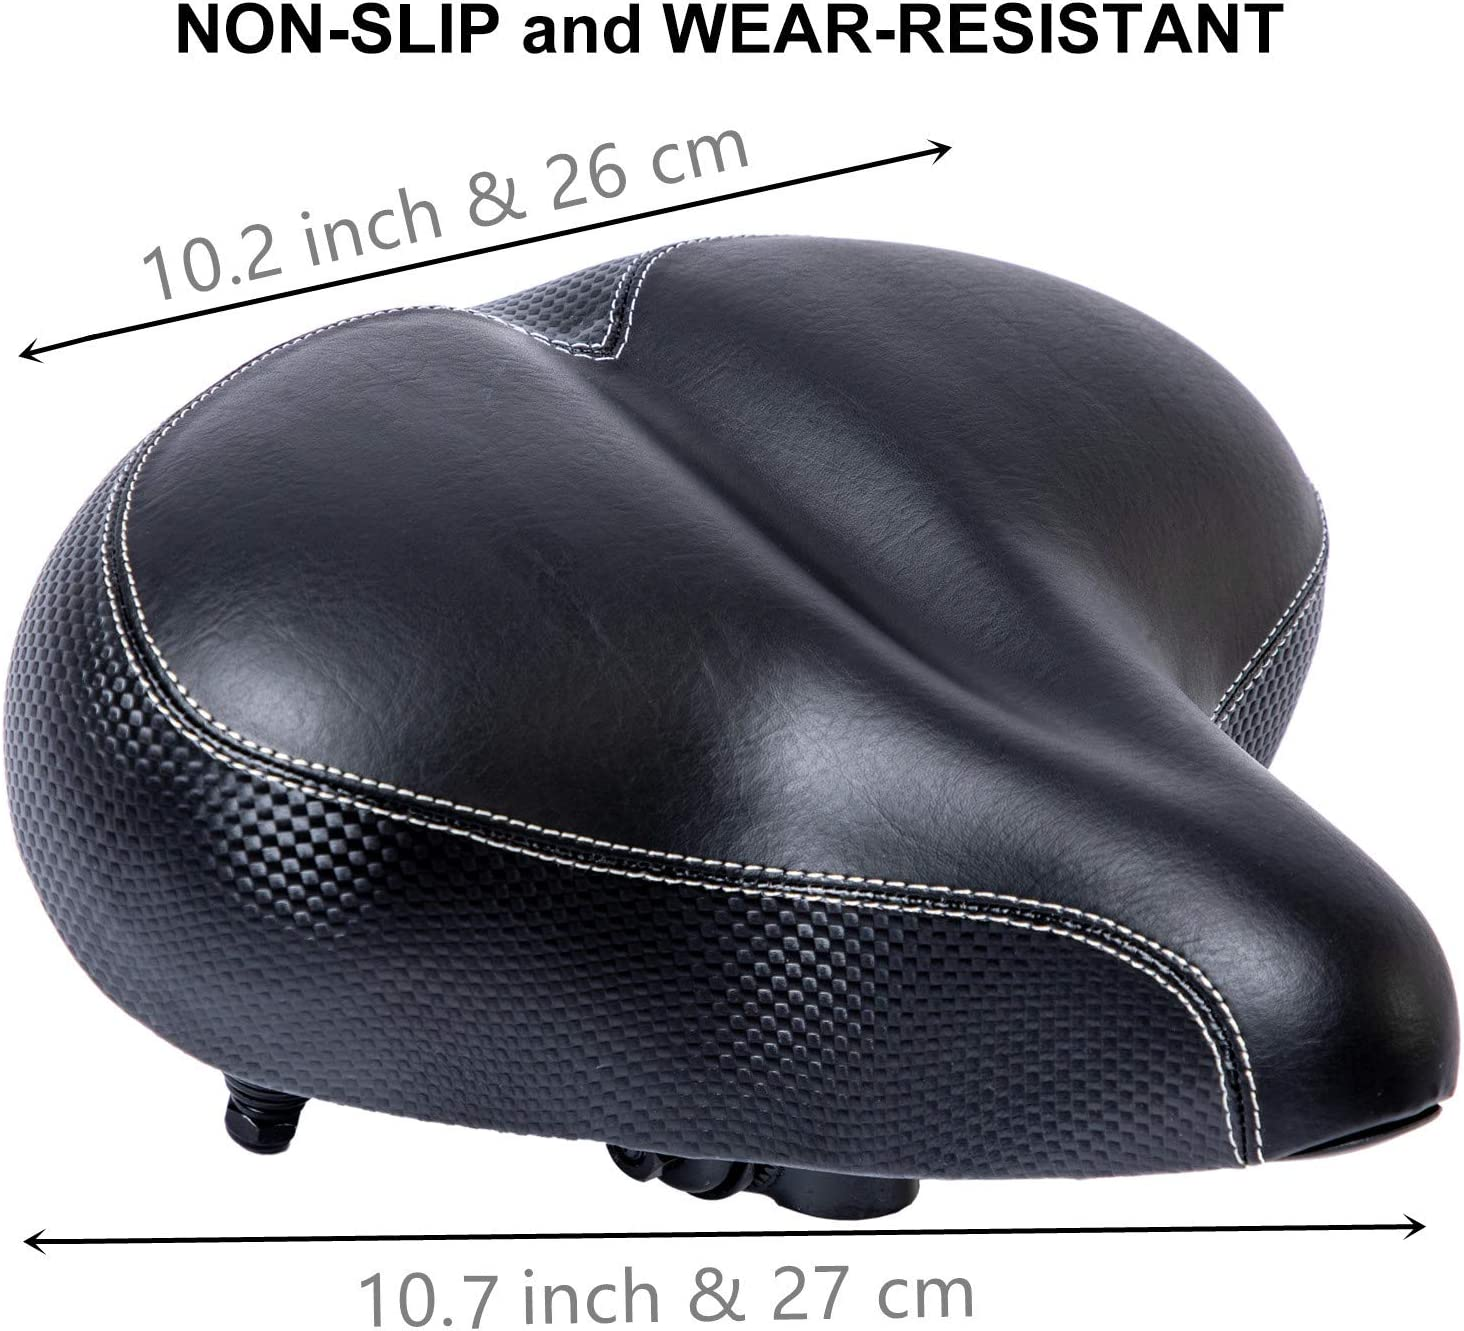 Bicycle Saddle is Thickened High Rebound Foam Padded Widened COZYROOMY Wide Comfortable Bike Seat Soft Breathable Double Spring Design for Most Indoor Outdoor Bike.1 Year Warranty